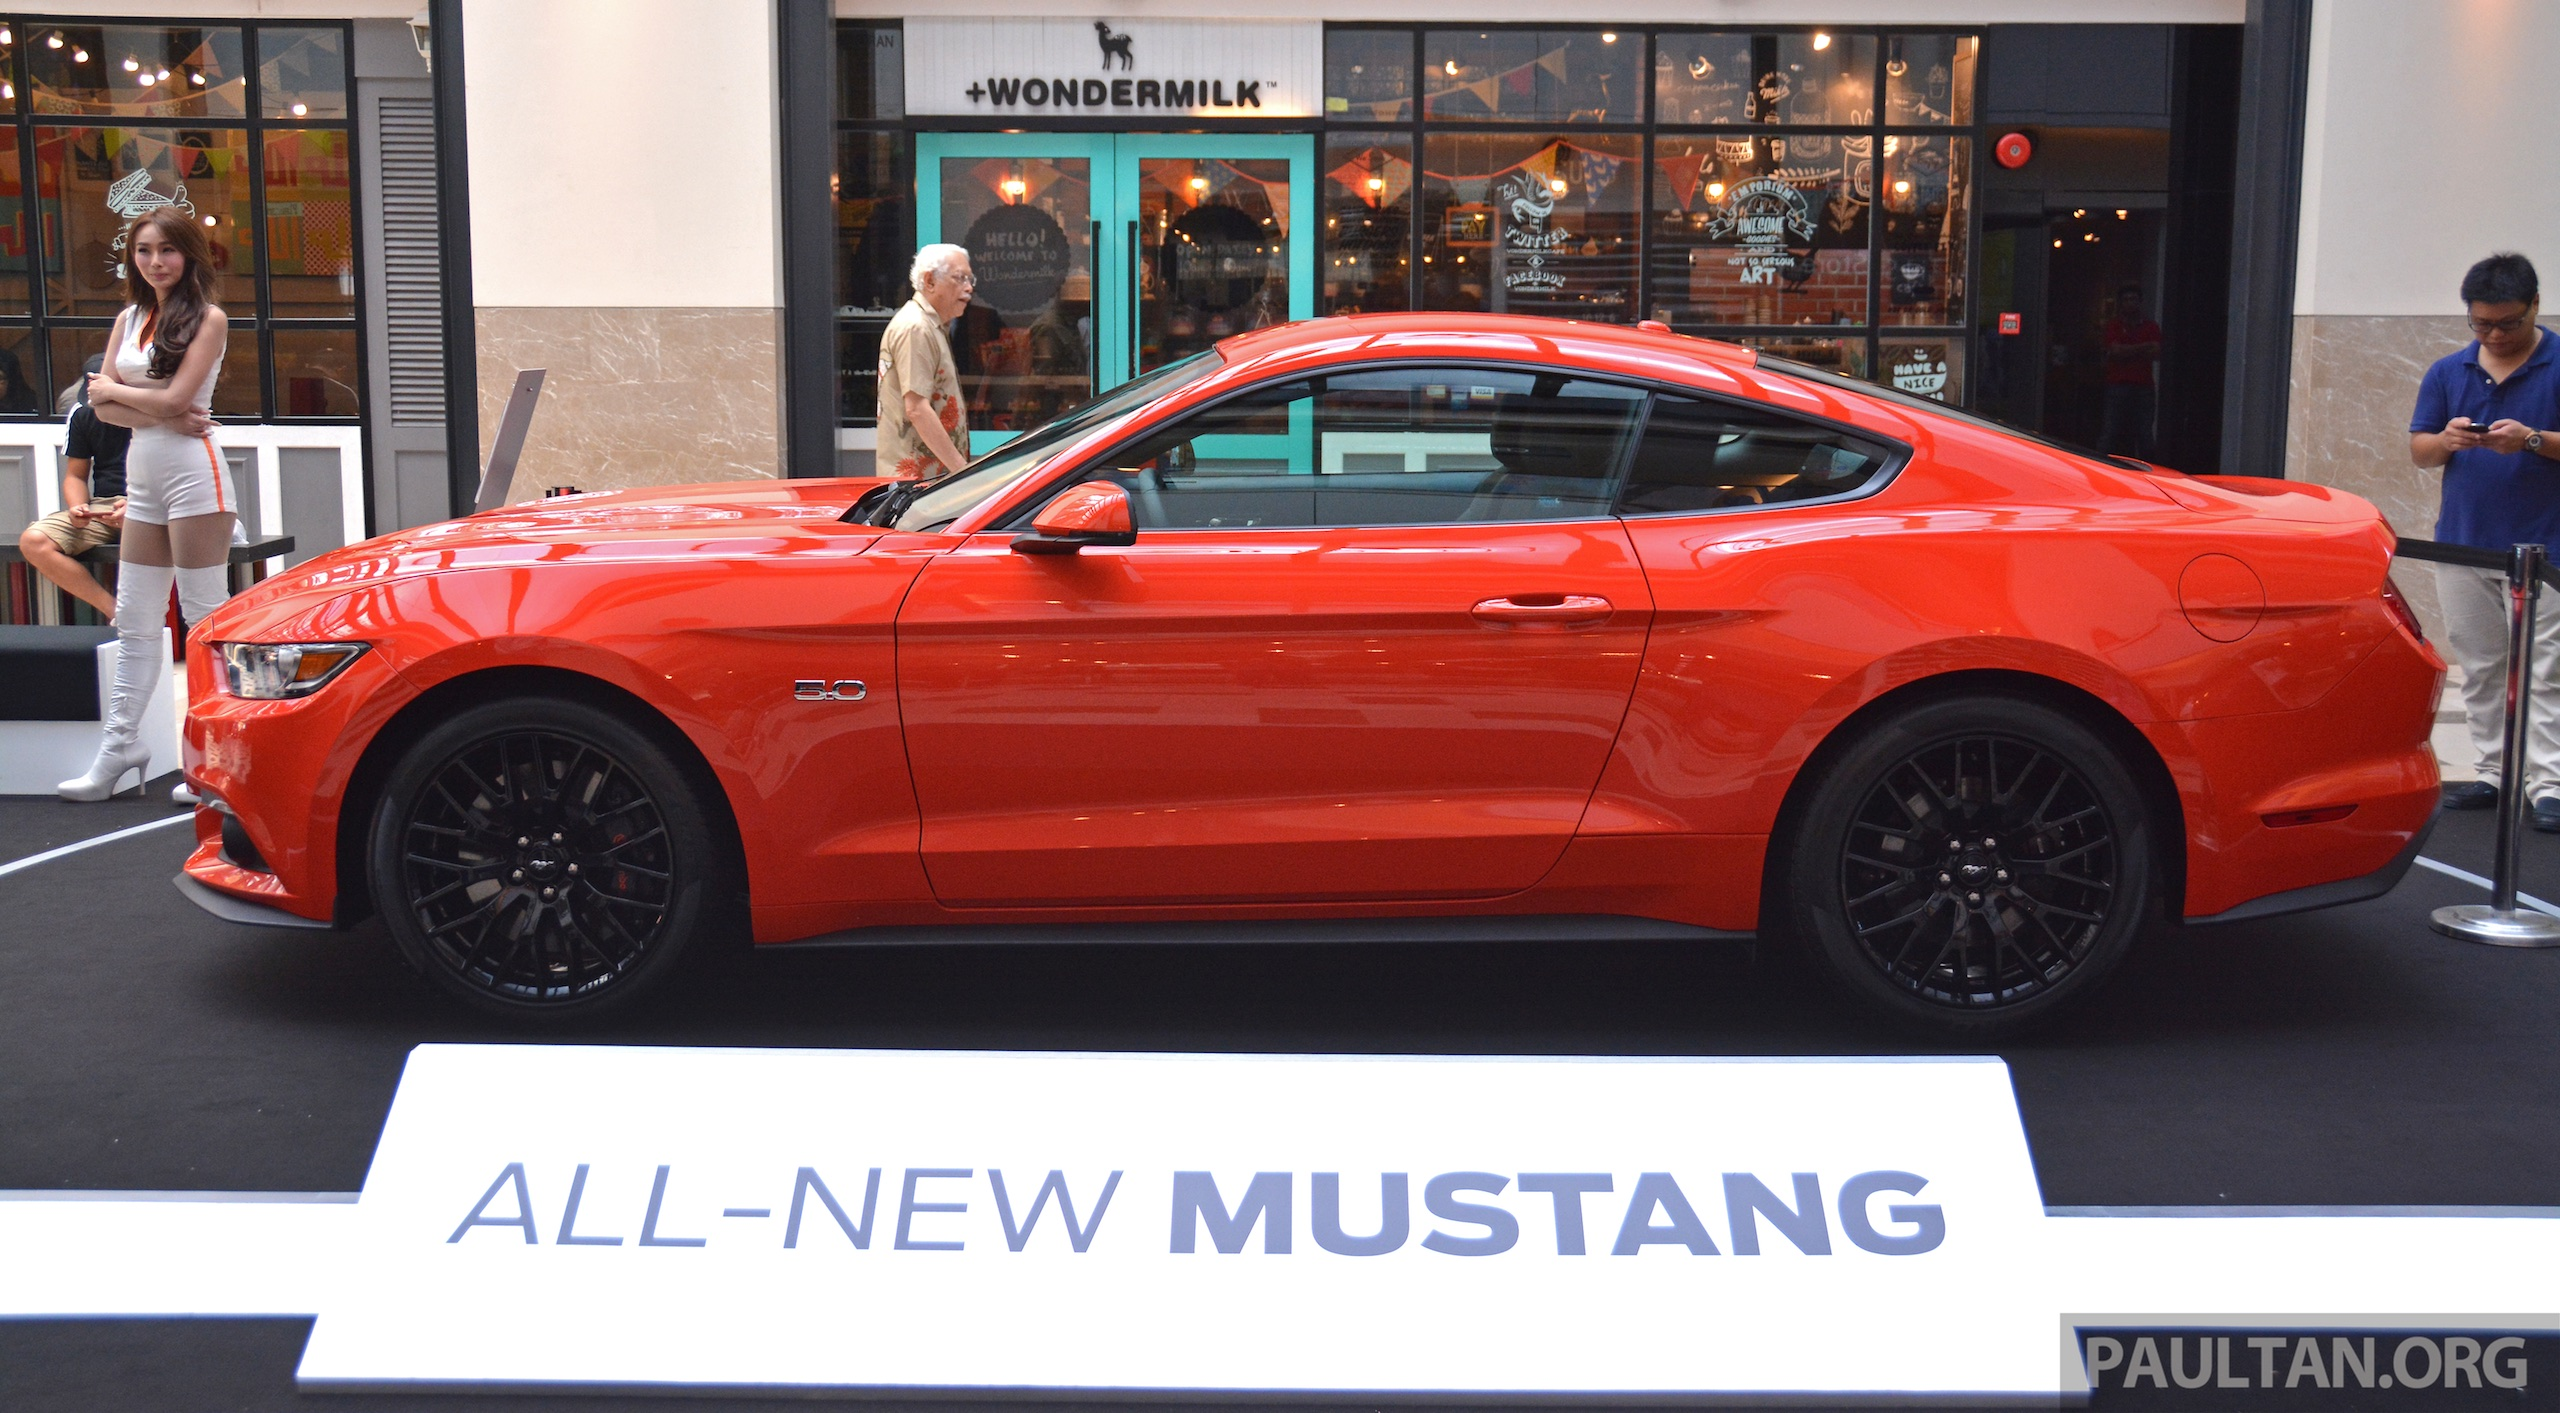 Gallery ford mustang 5 0 gt on display at publika image 317632